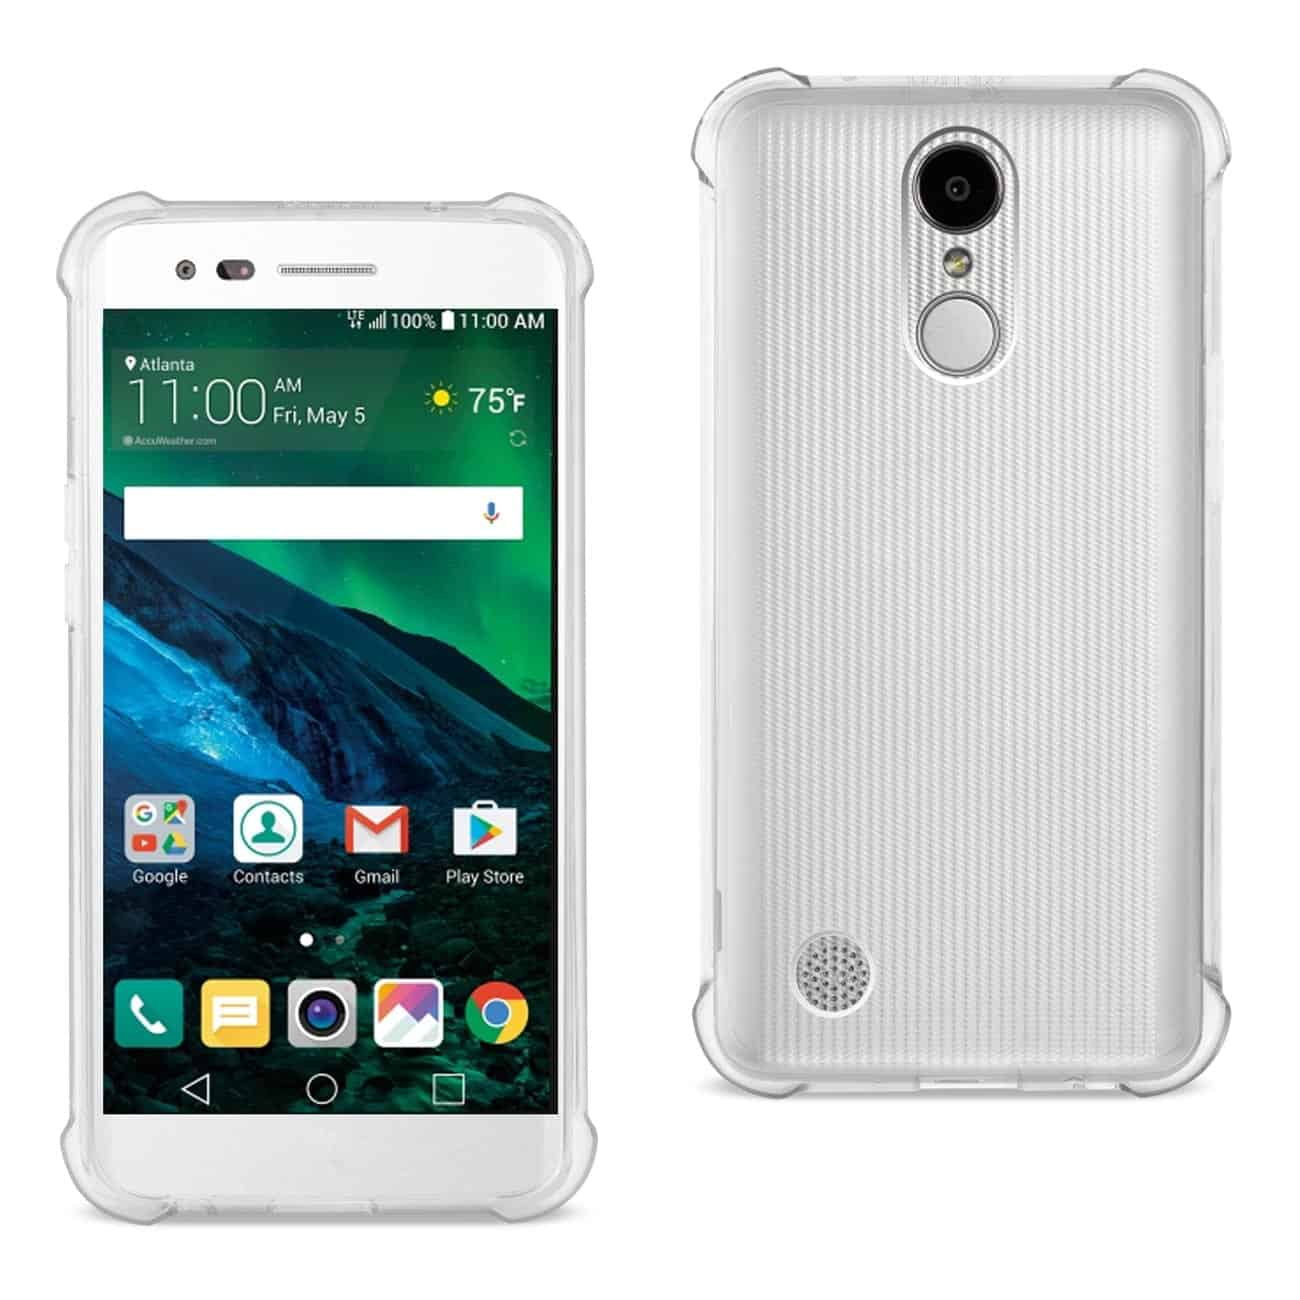 LG FORTUNE/ PHOENIX 3/ ARISTO CLEAR BUMPER CASE WITH AIR CUSHION PROTECTION IN CLEAR